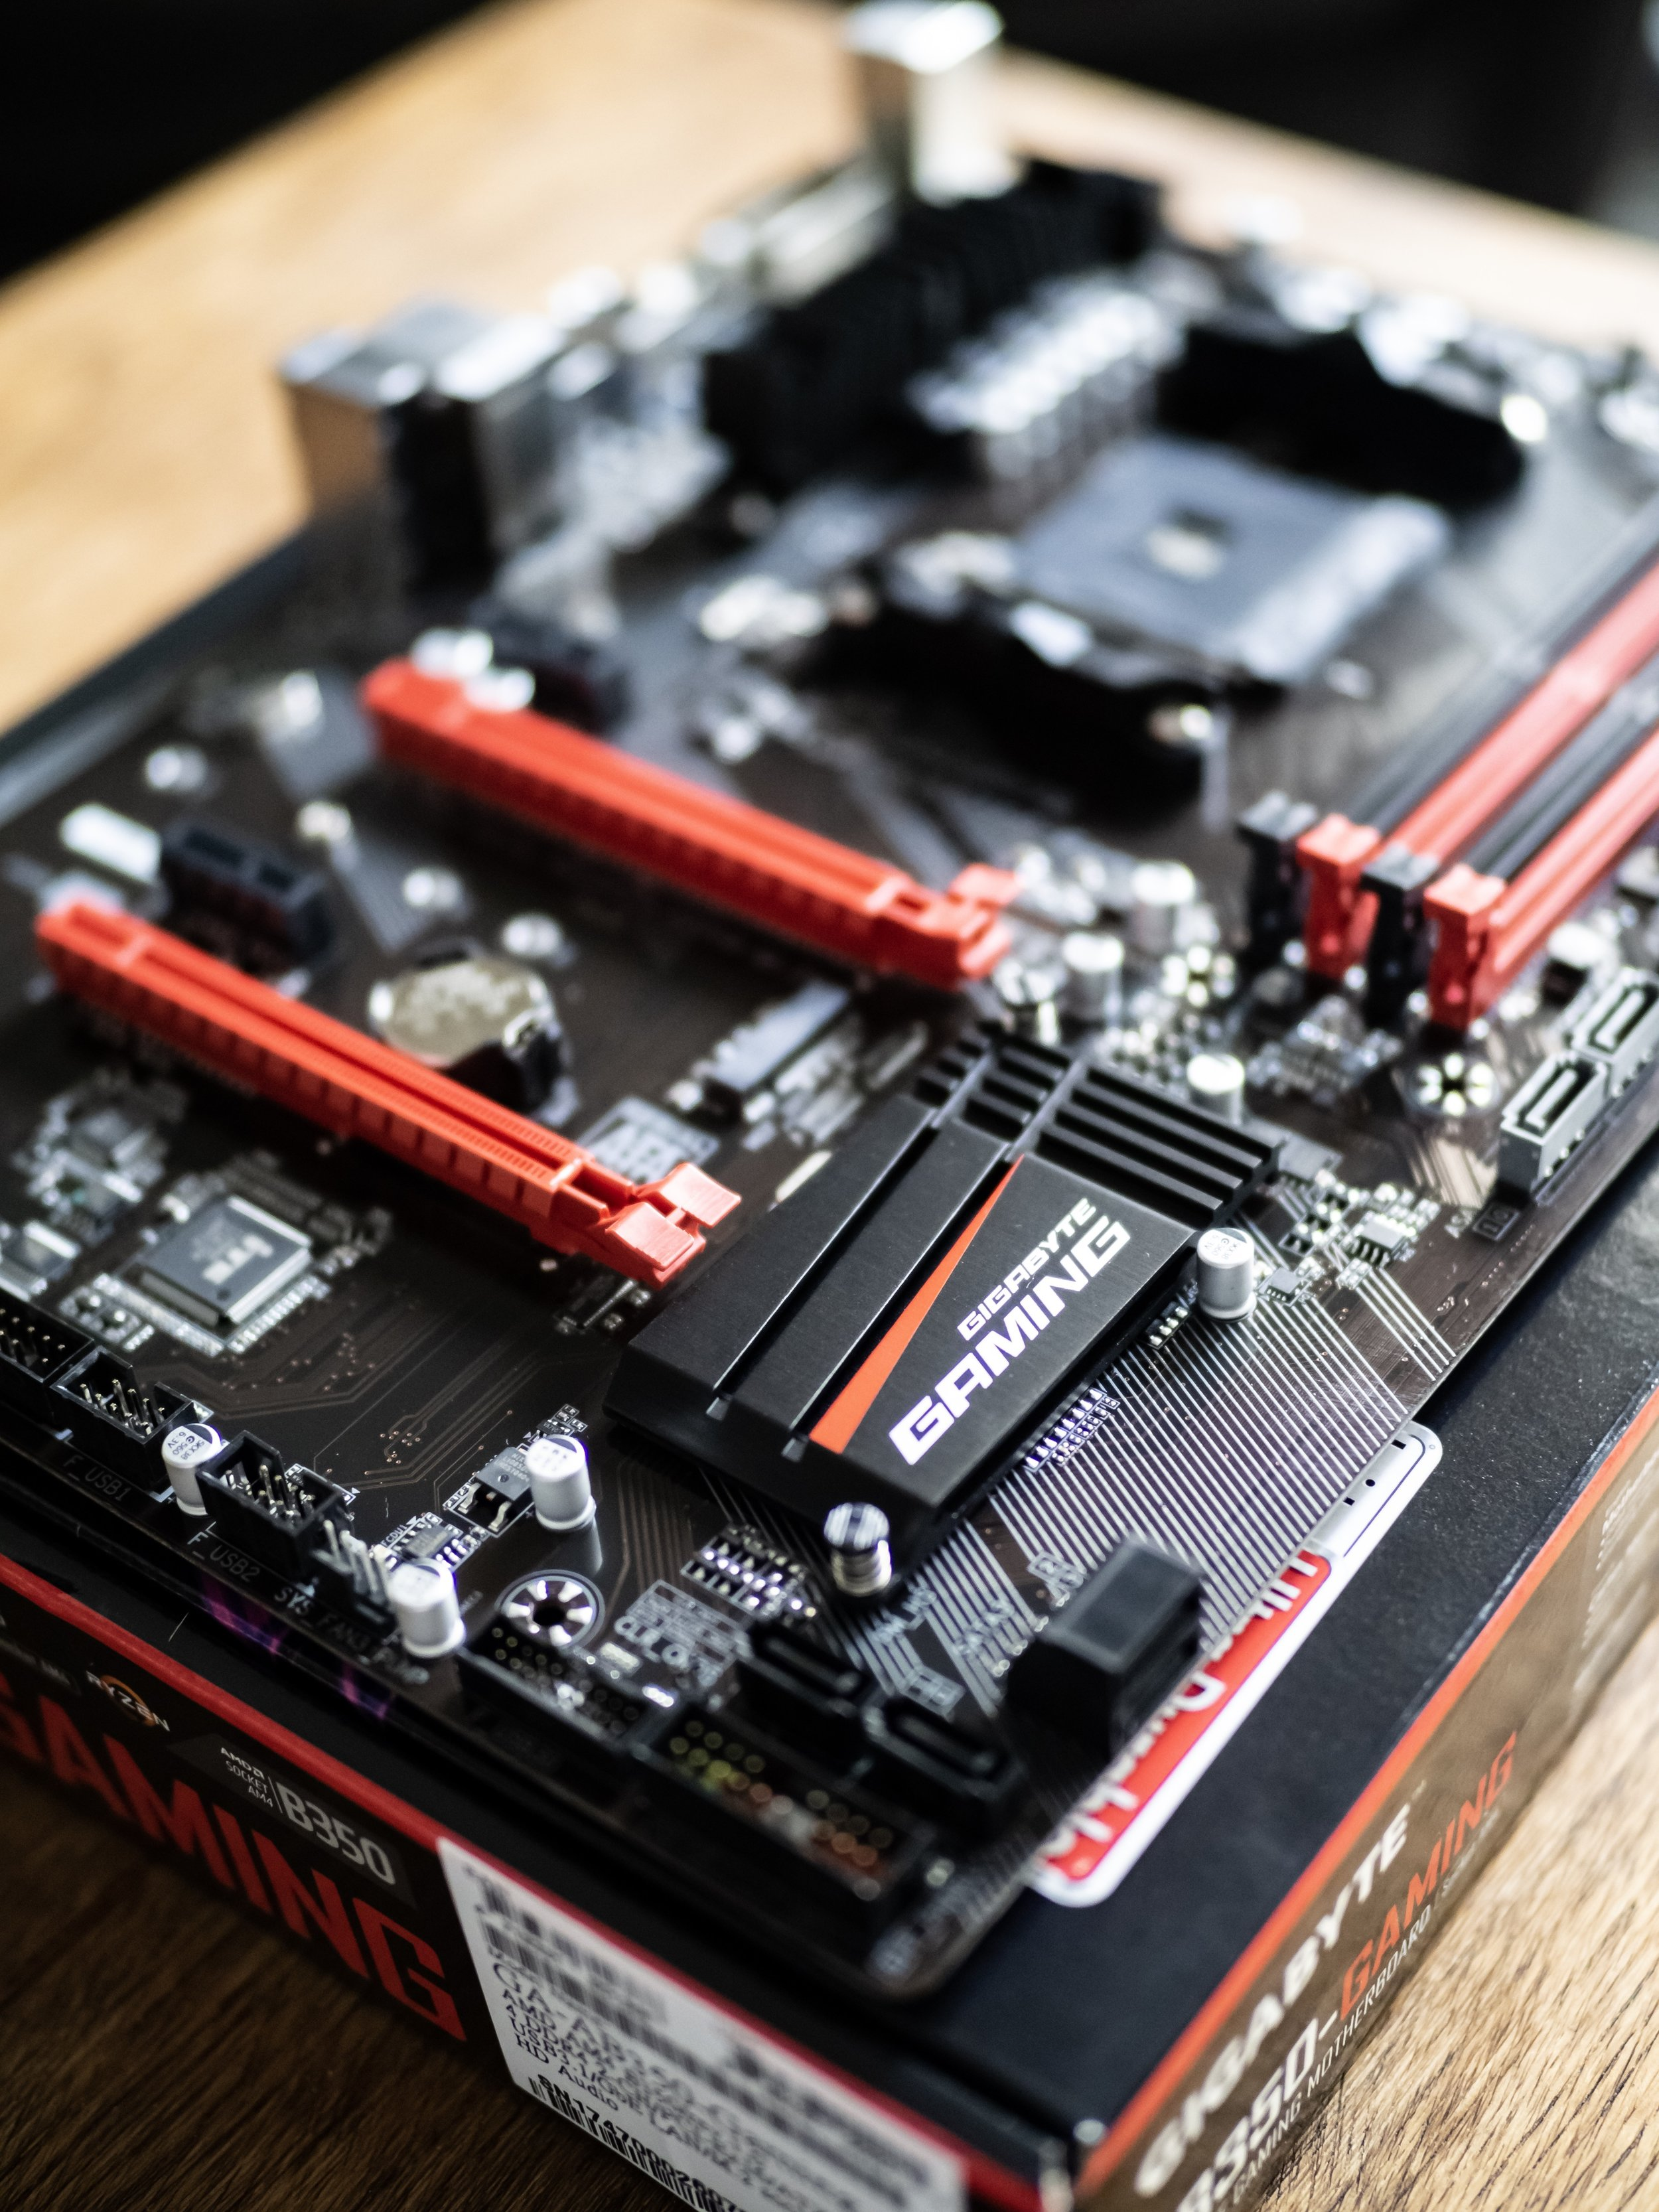 Gaming PC Build Gigabyte AB350 Motherboard